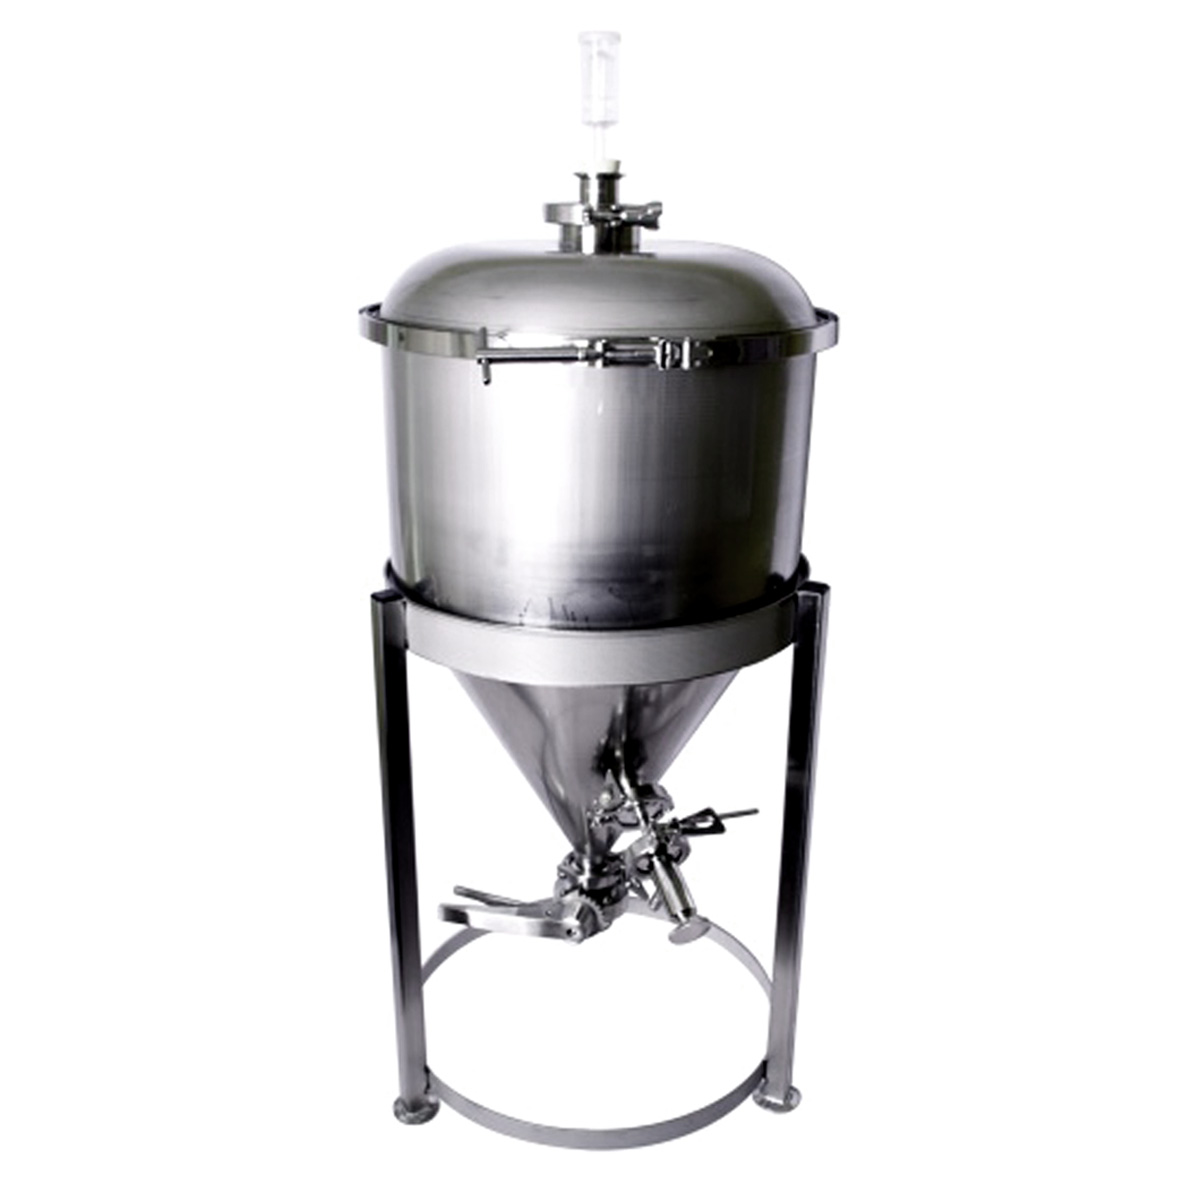 Home Wine Making Promo Codes for Deluxe 27 Gallon Stainless Conical Fermenter Coupon Code